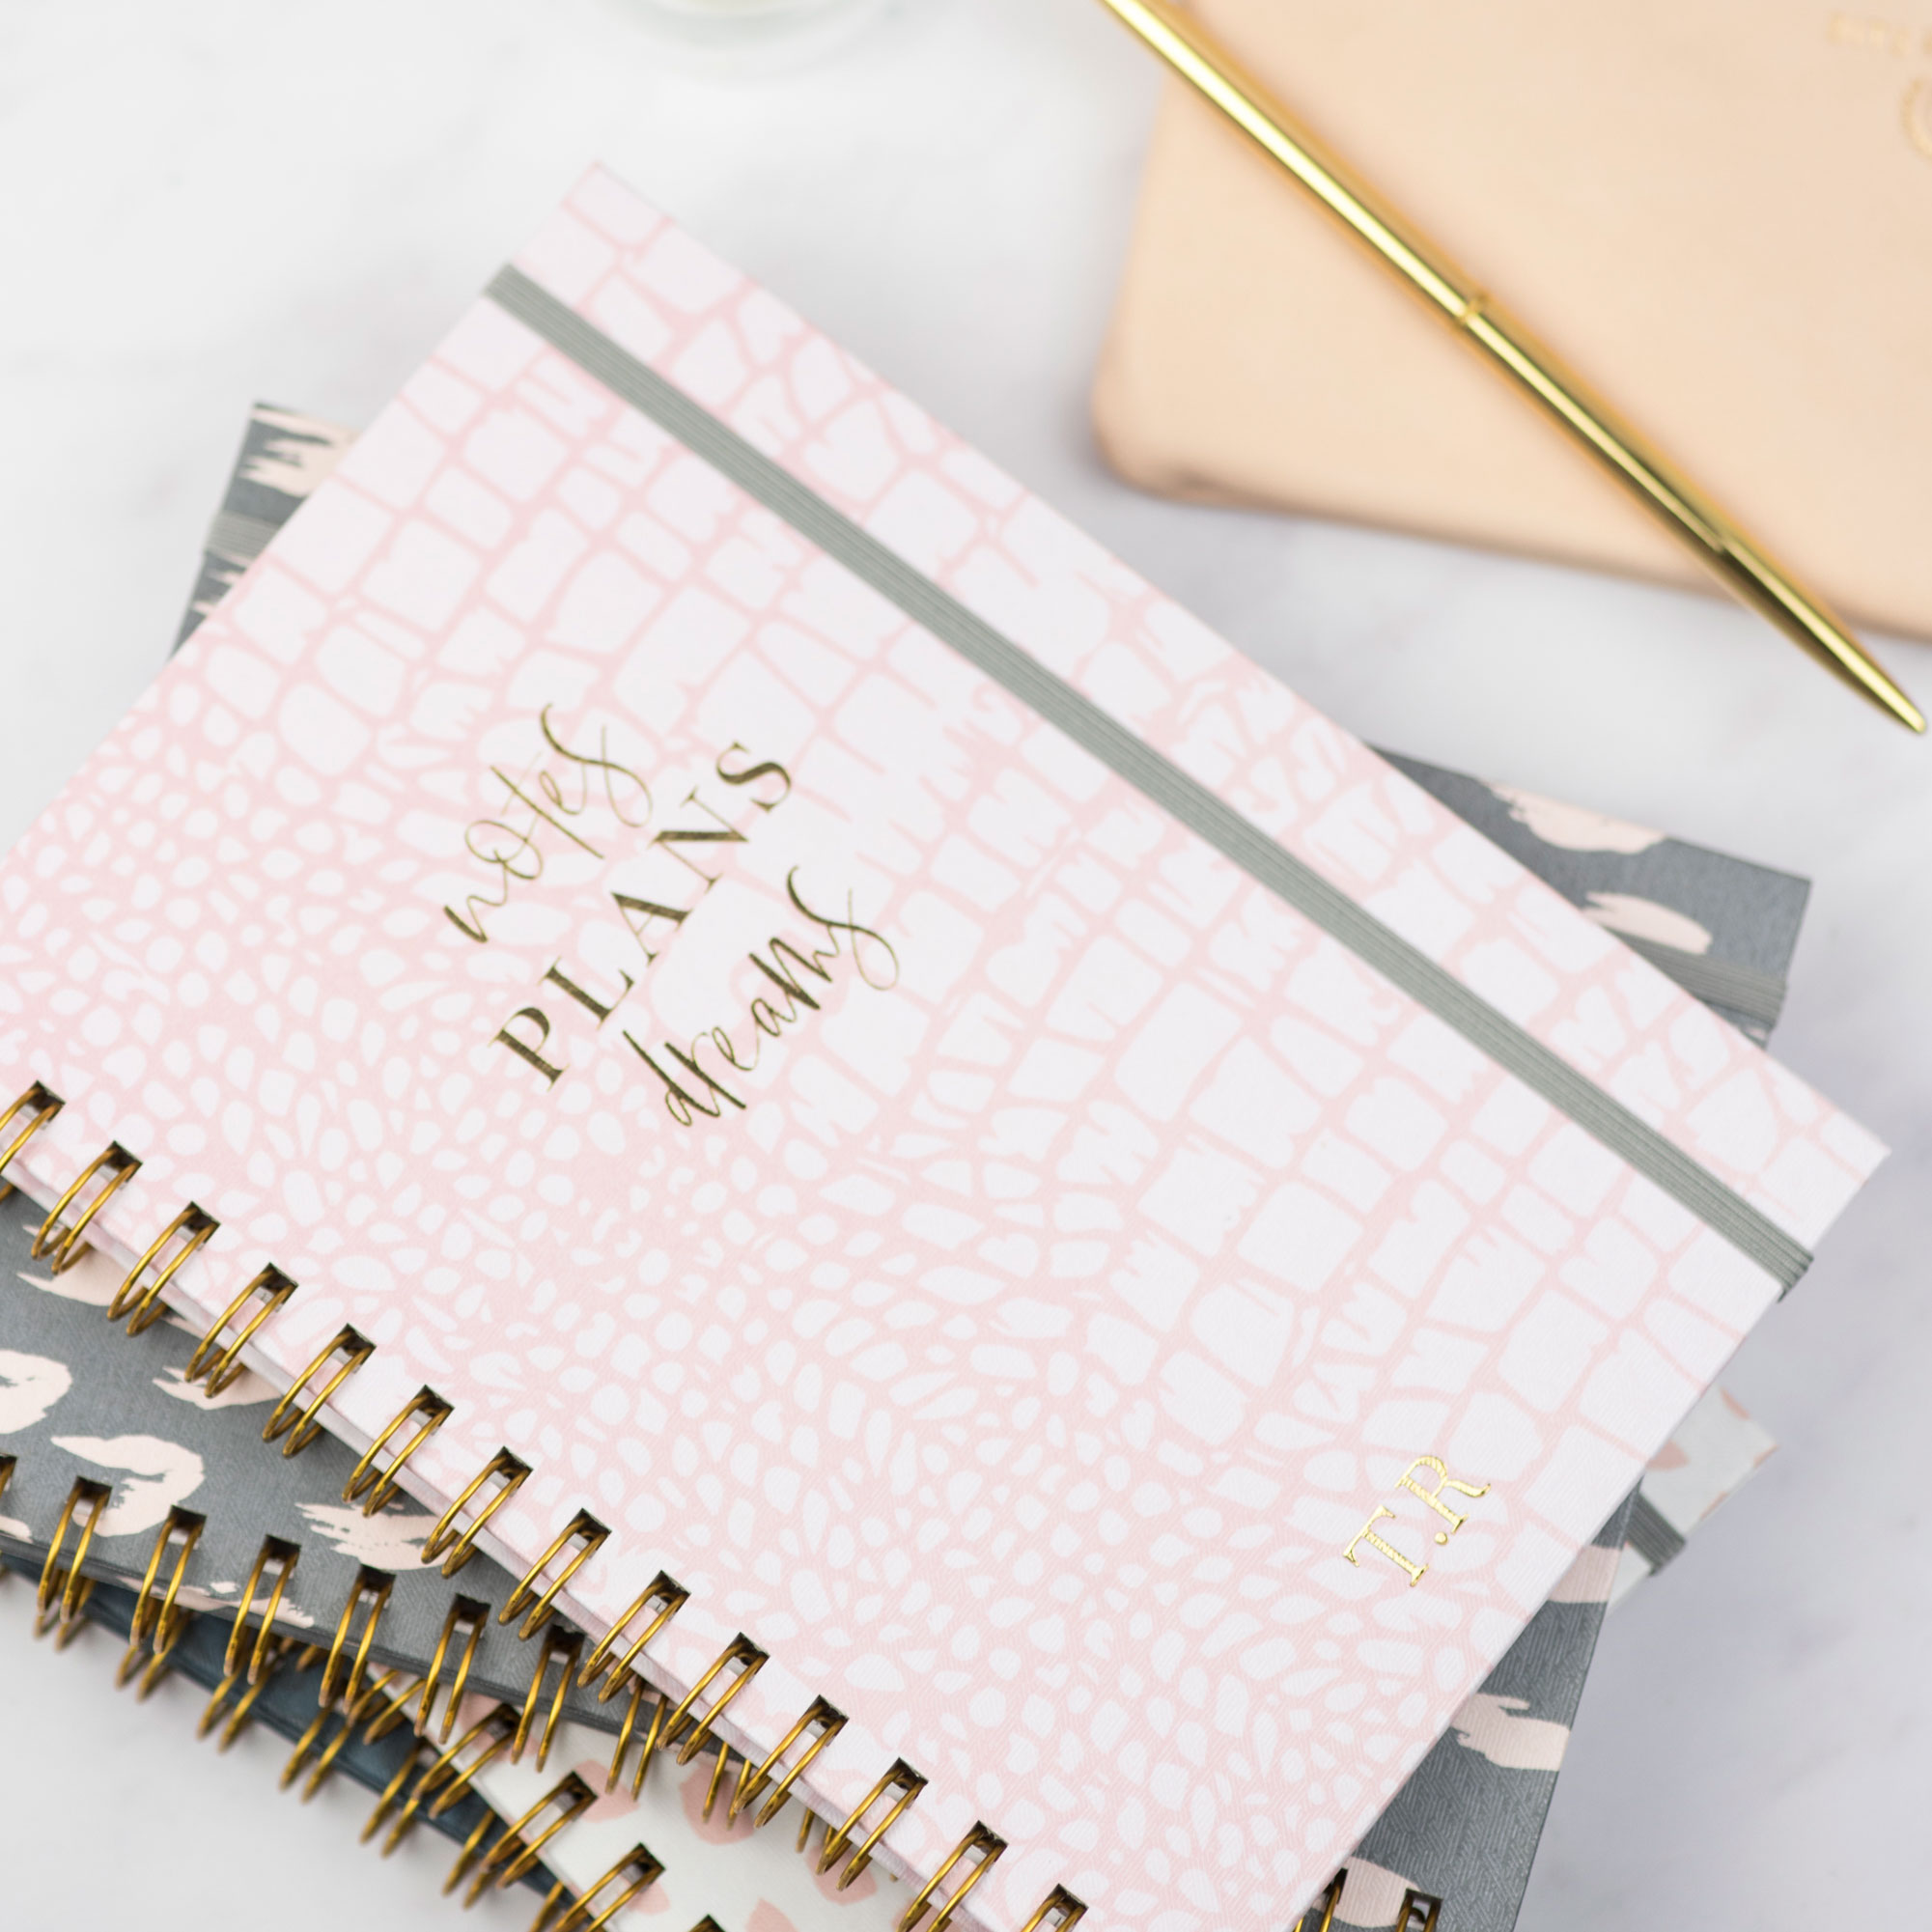 A simple motivational notebook is a lovely way to encourage someone's passions!